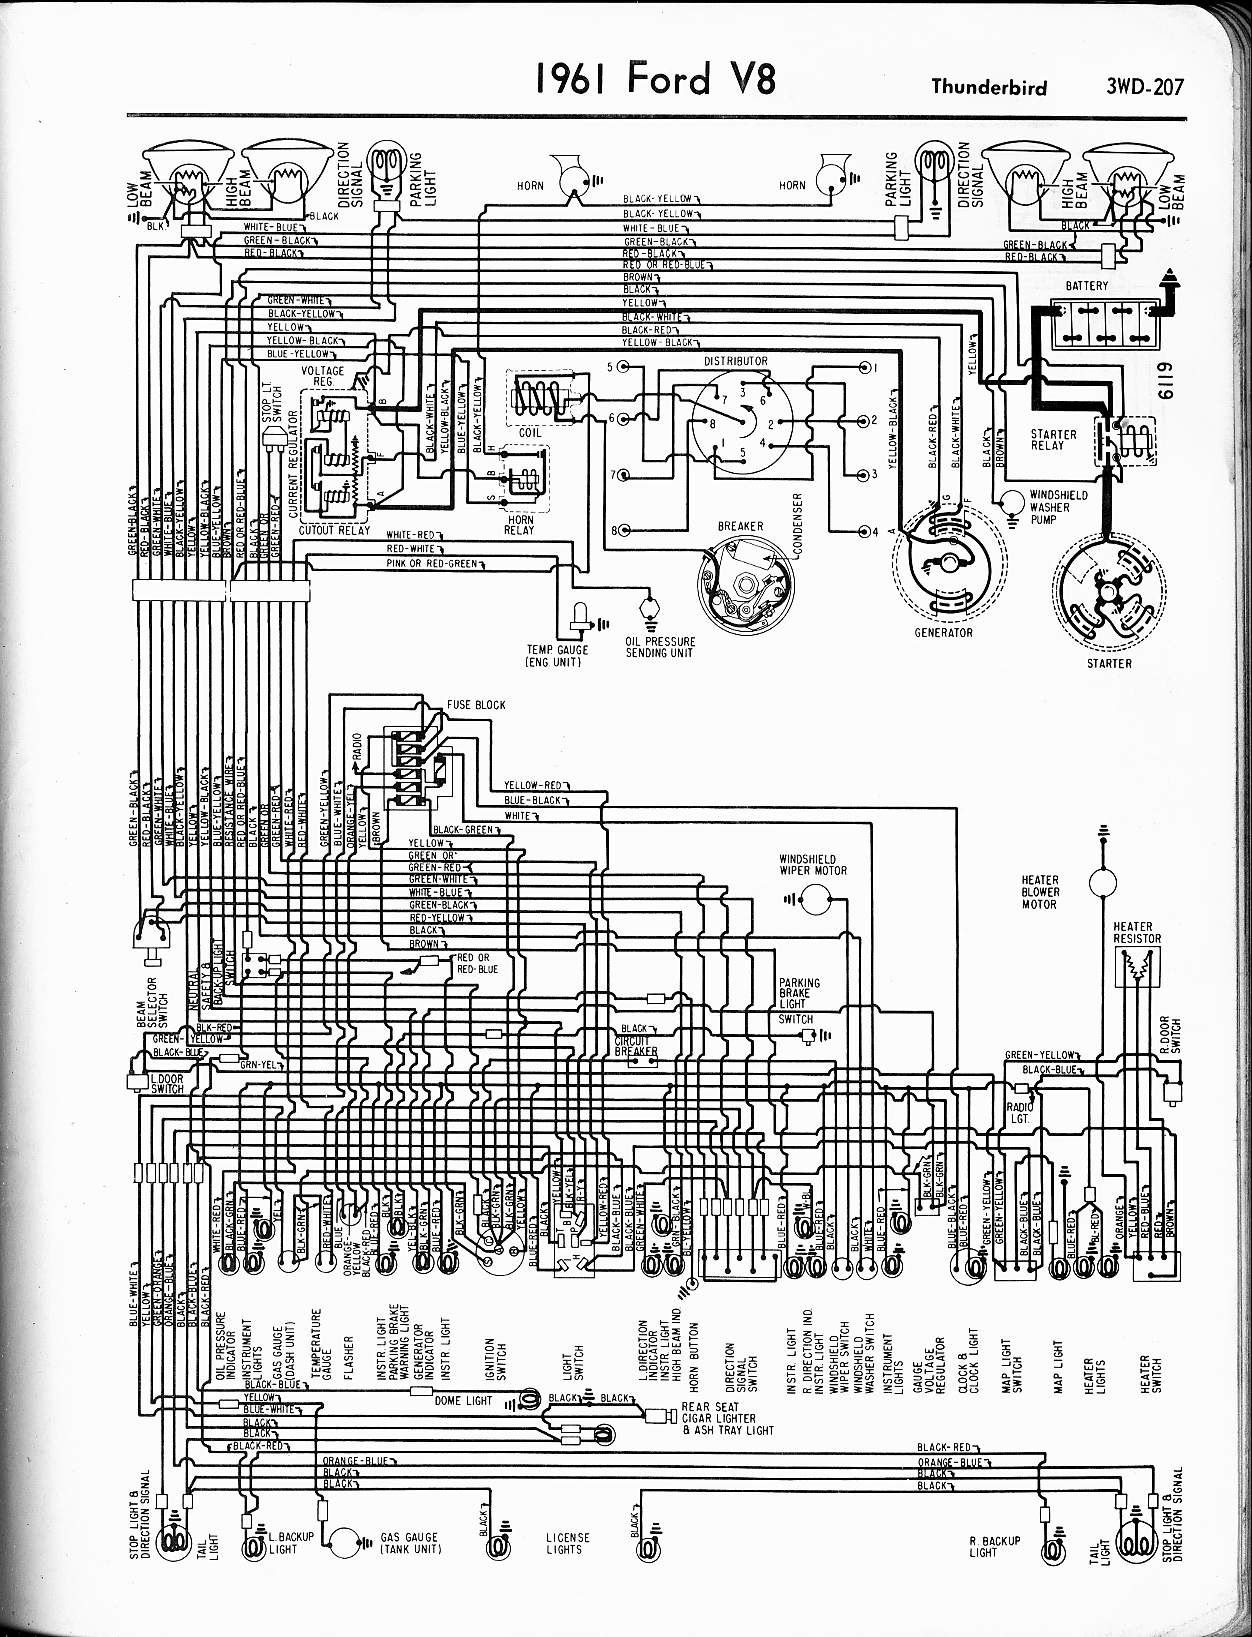 2003 ford thunderbird diagrams wiring diagram u2022 rh tinyforge co 1962 Ford Thunderbird Wiring Diagram 1961 thunderbird wiring diagram